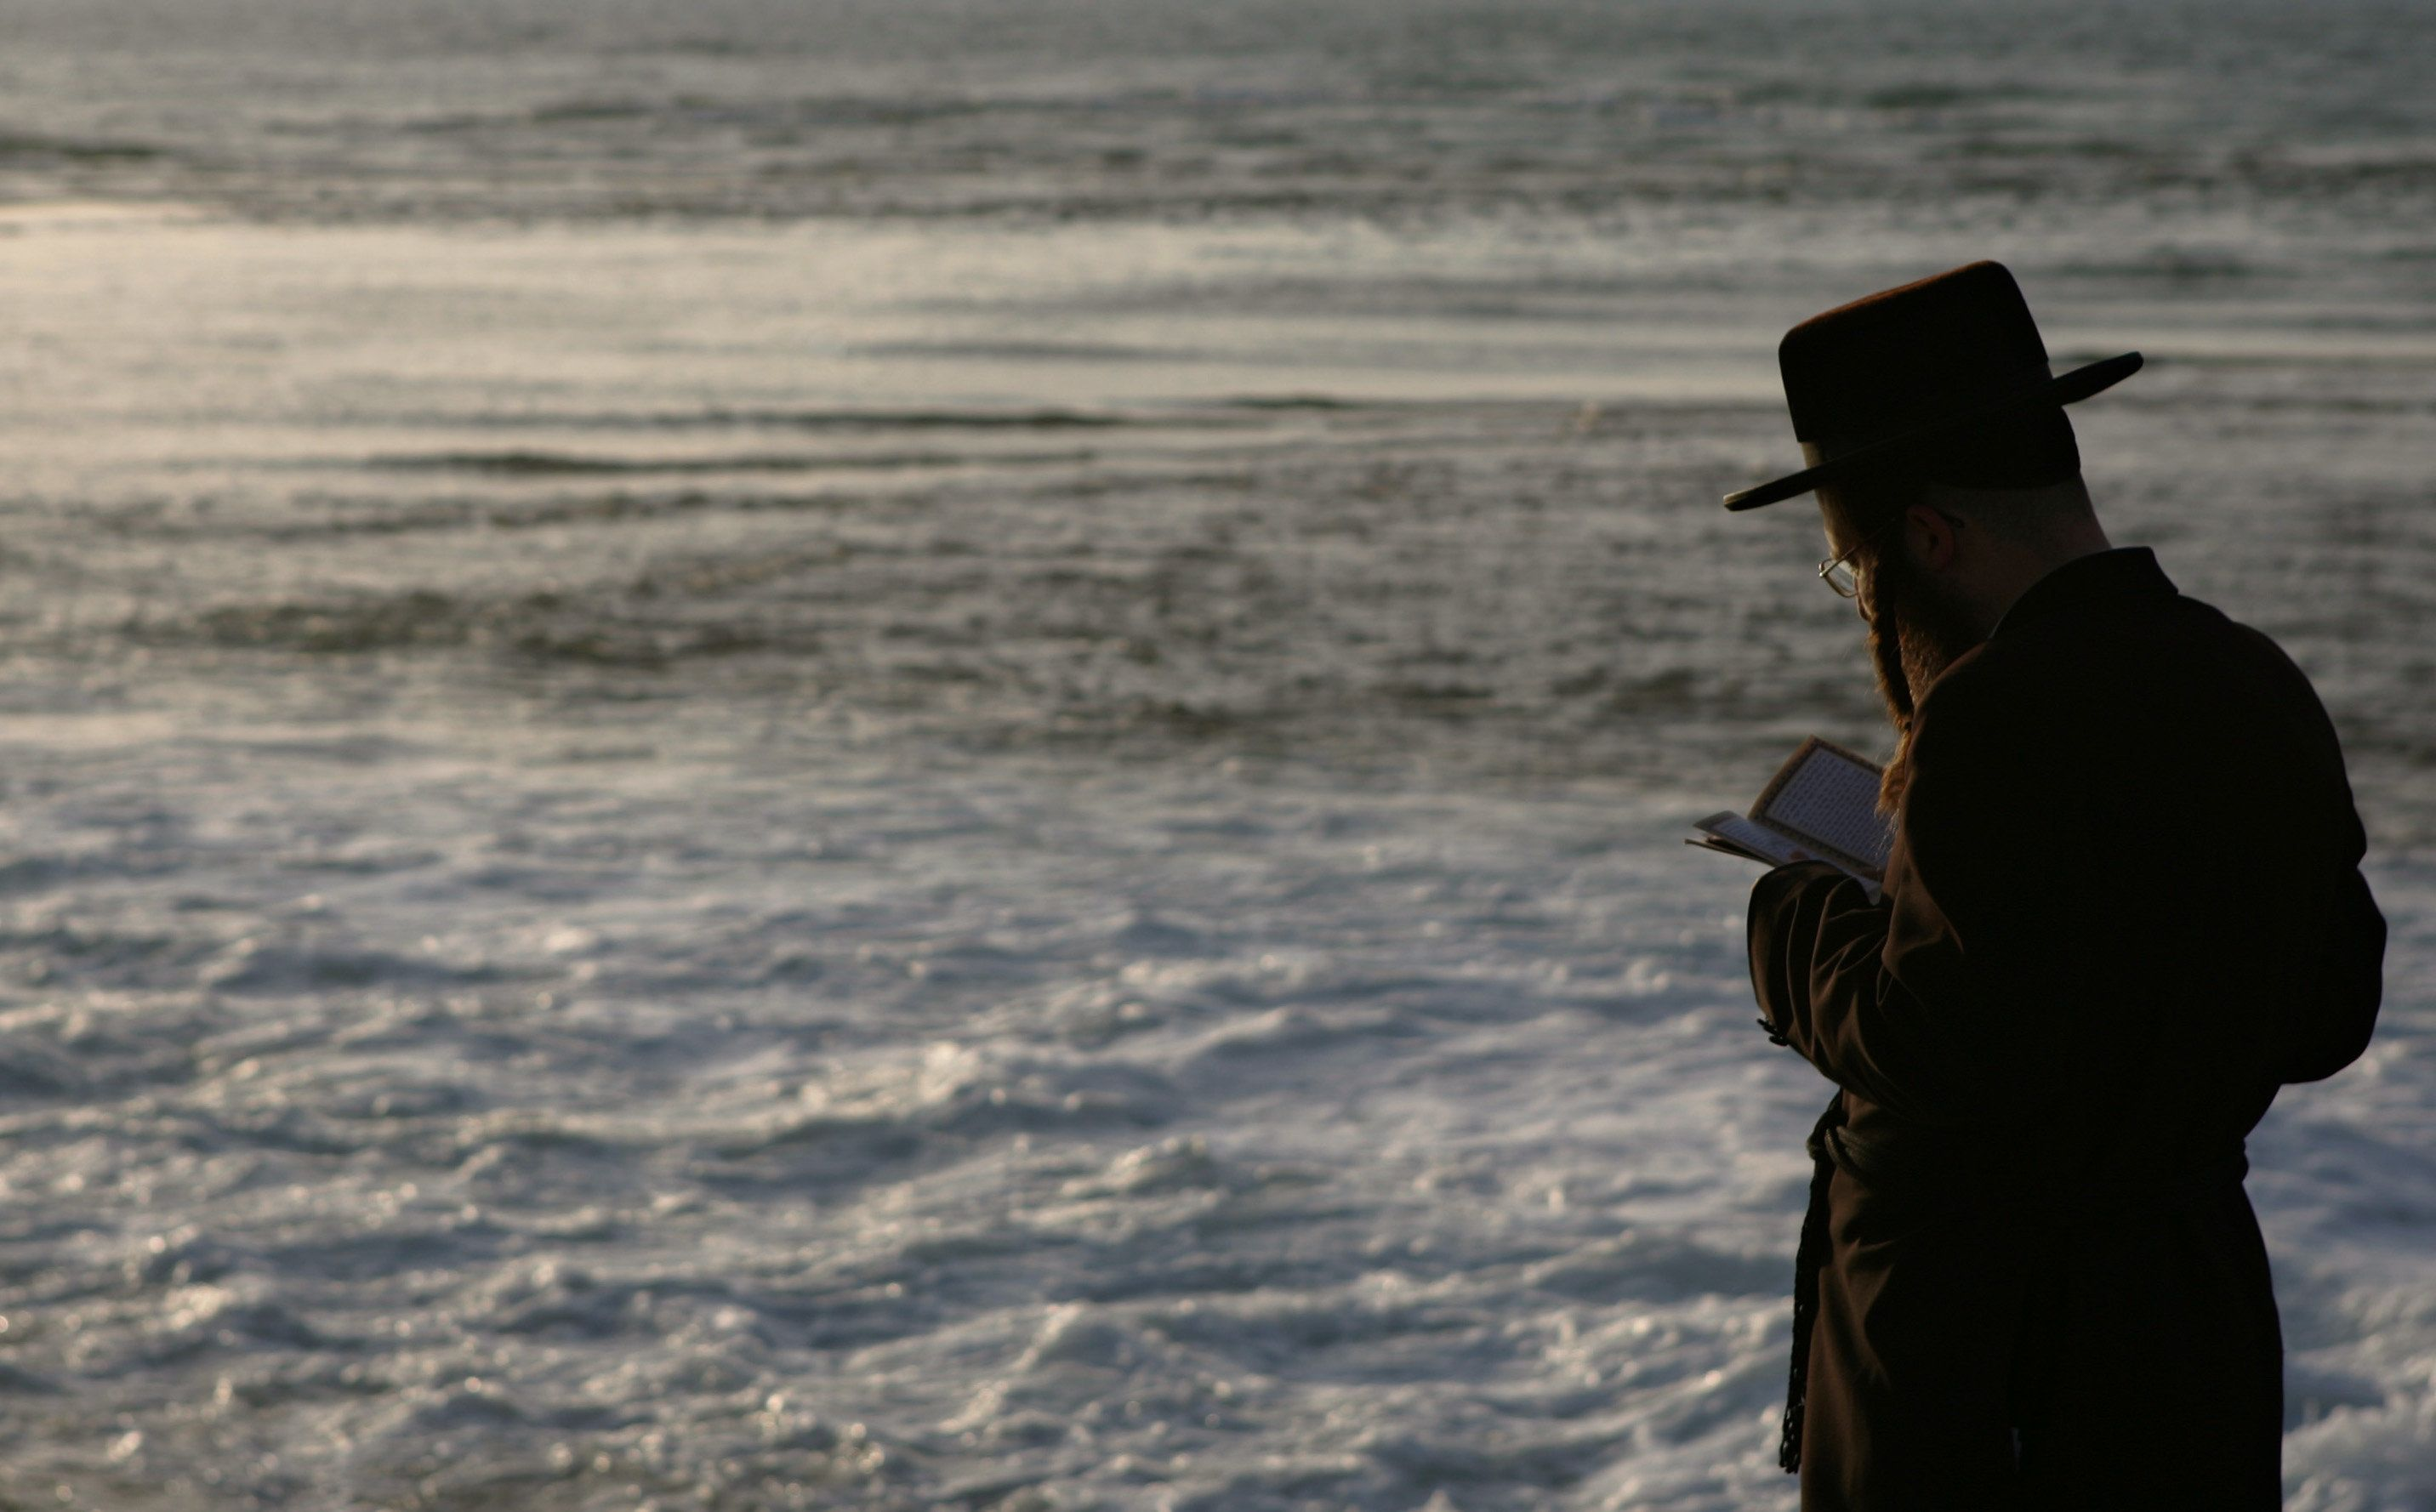 An ultra-Orthodox man prays at Tel Aviv's beachfront, Israel, Thursday, Sept. 28, 2006. Yom Kippur, which means the Day of Atonement, the holiest day in the Jewish calendar falls on Monday, Oct. 2. (AP Photo/Ariel Schalit)